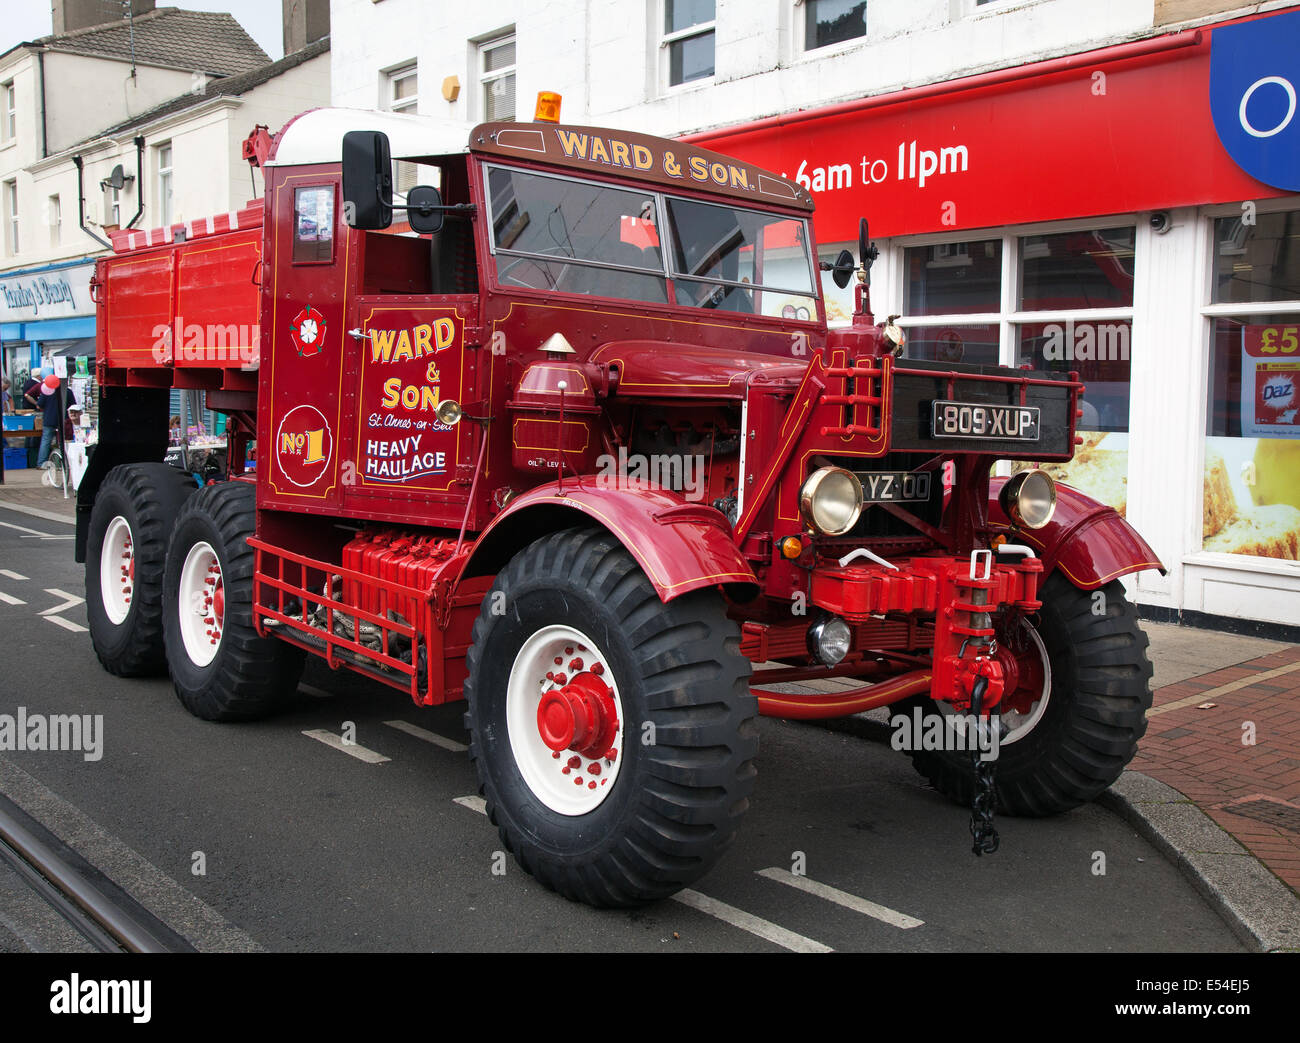 Fleetwood, Lancashire, 20th July, 2014. Scammell Pioneer 1959 Artillery Tractor at the Fleetwood Festival of Transport. - Stock Image